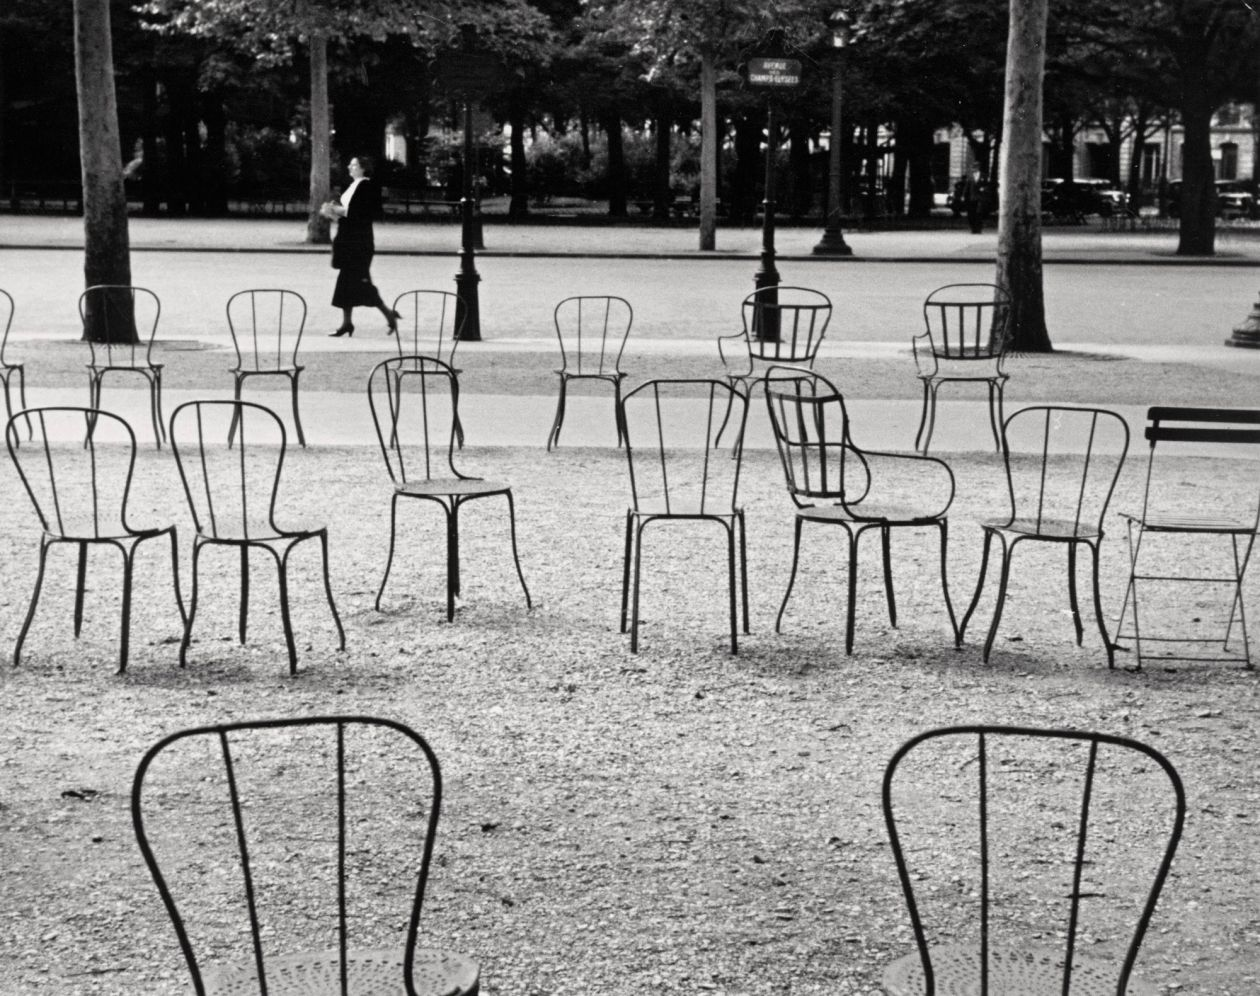 Chairs of Paris (1927) by André Kertész